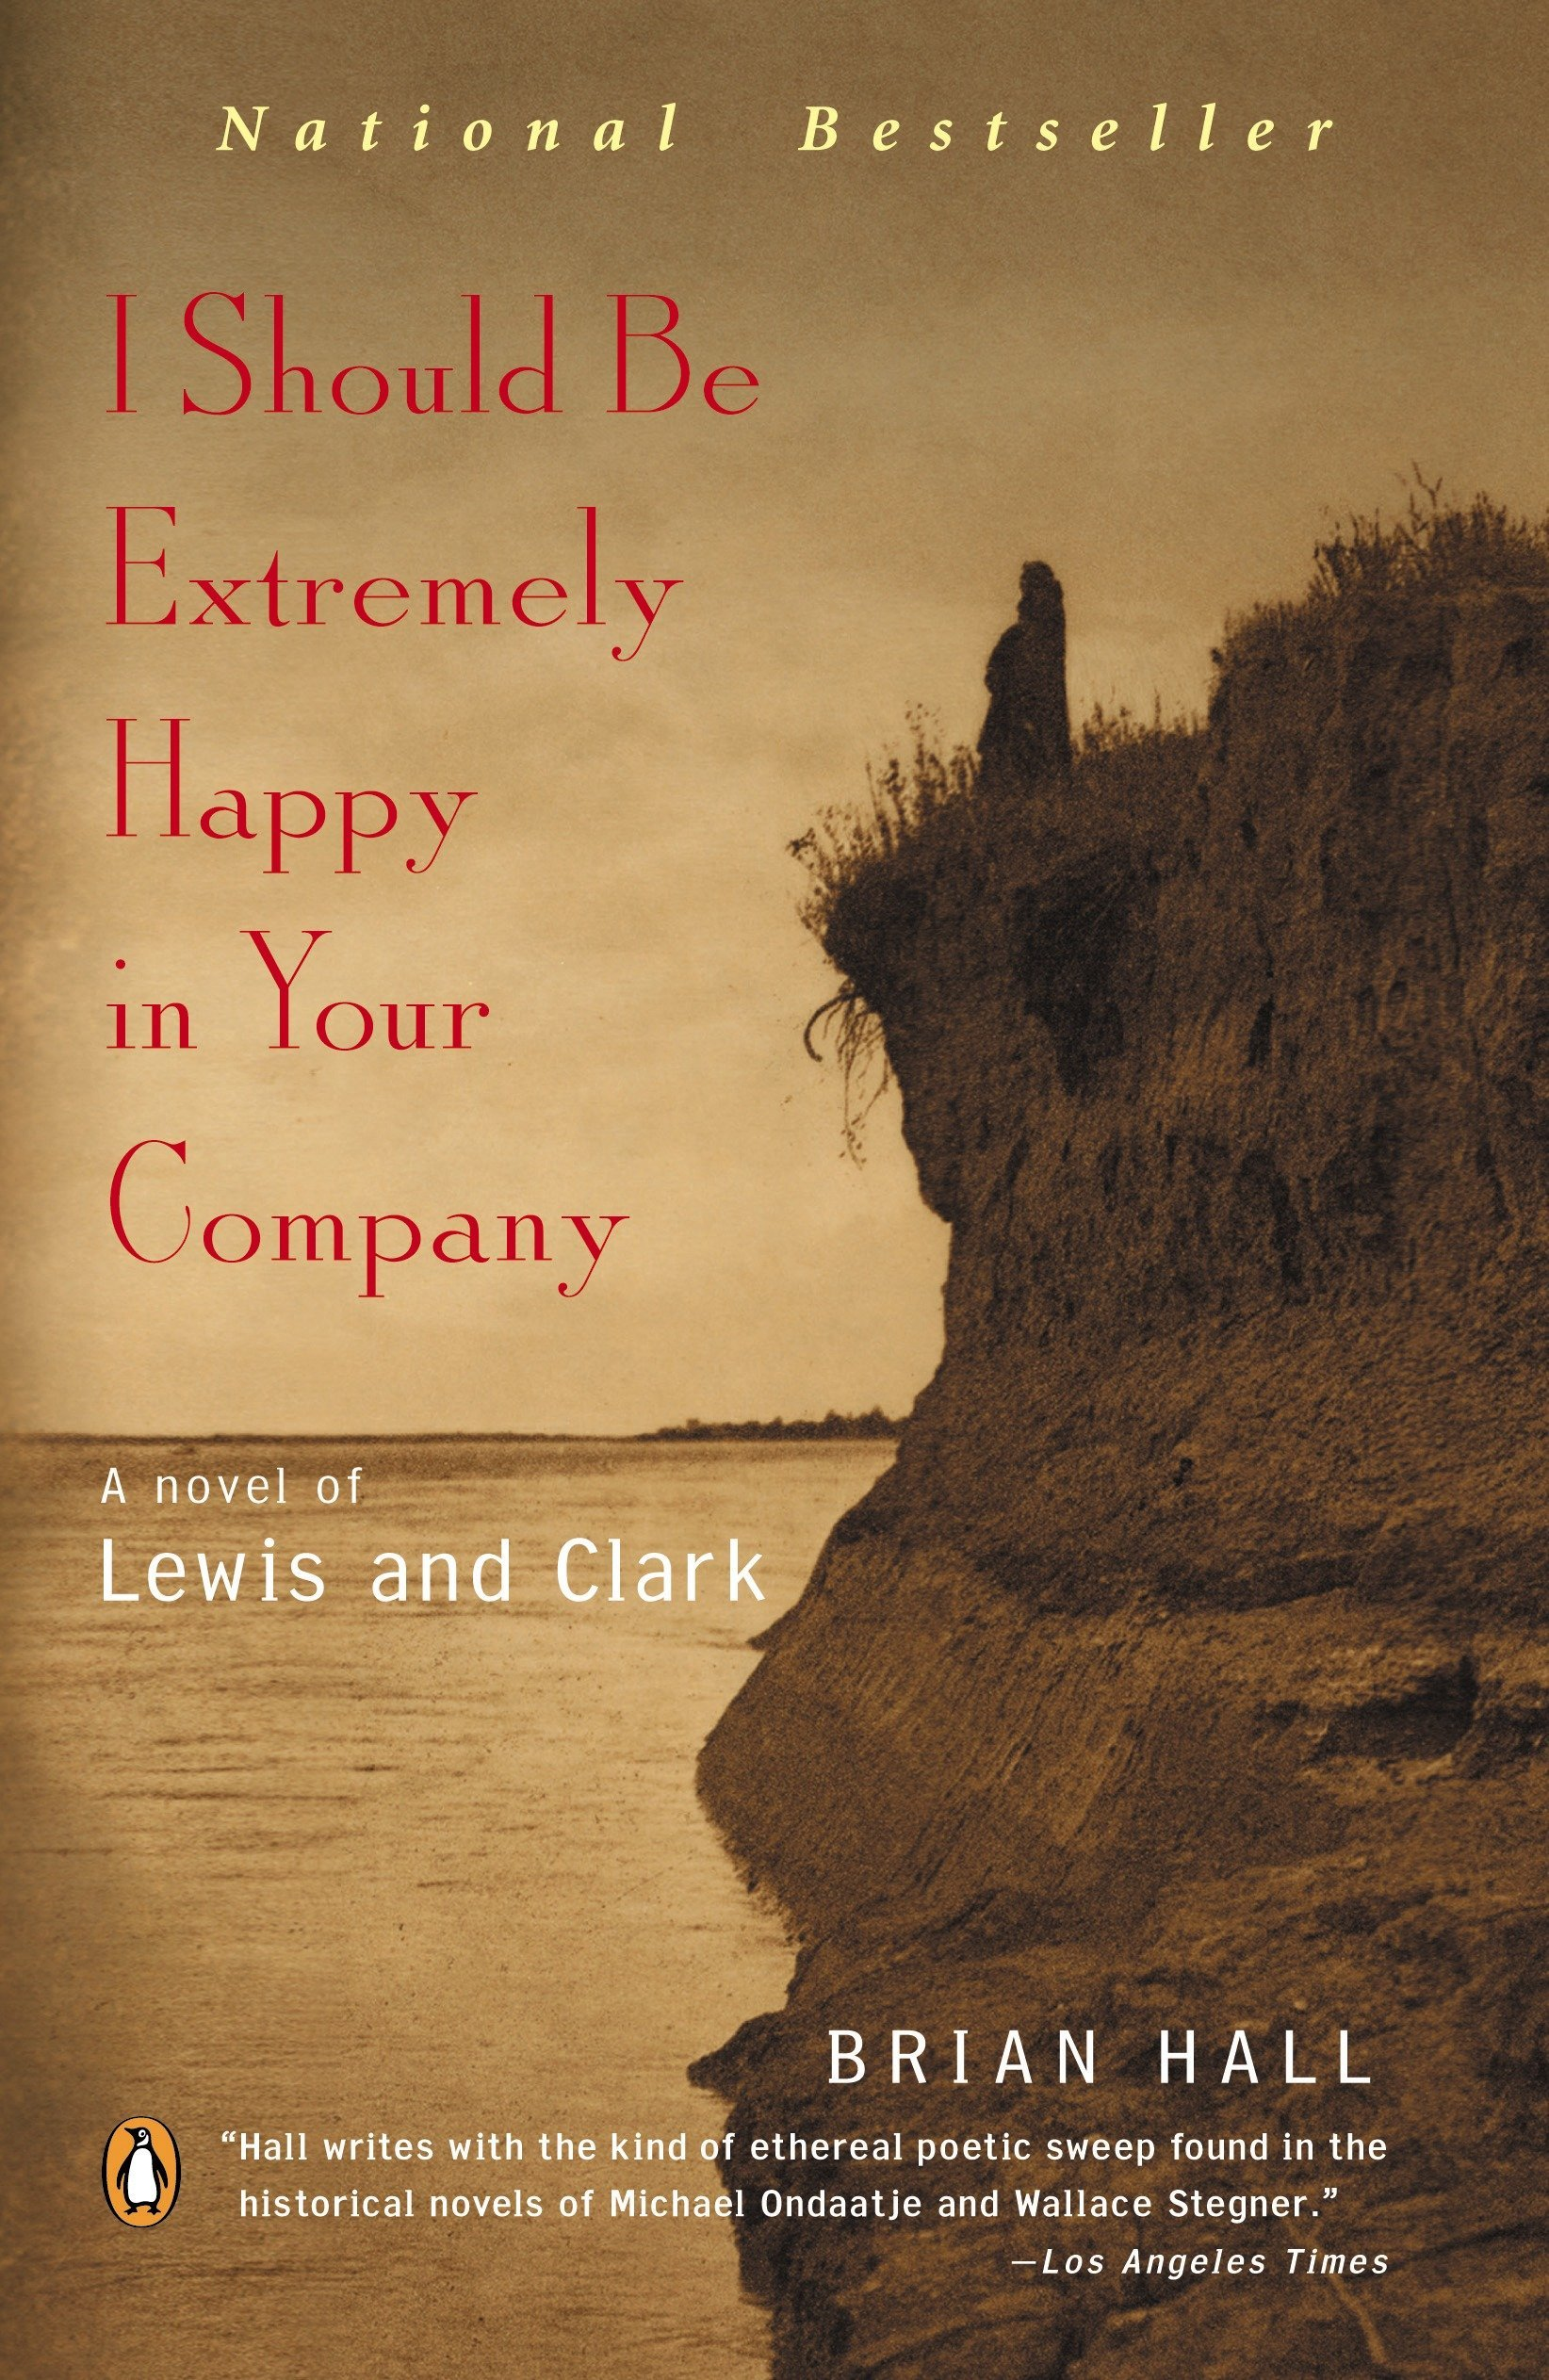 Amazon.com: I Should Be Extremely Happy in Your Company: A Novel of Lewis  and Clark (9780142003718): Brian Hall: Books